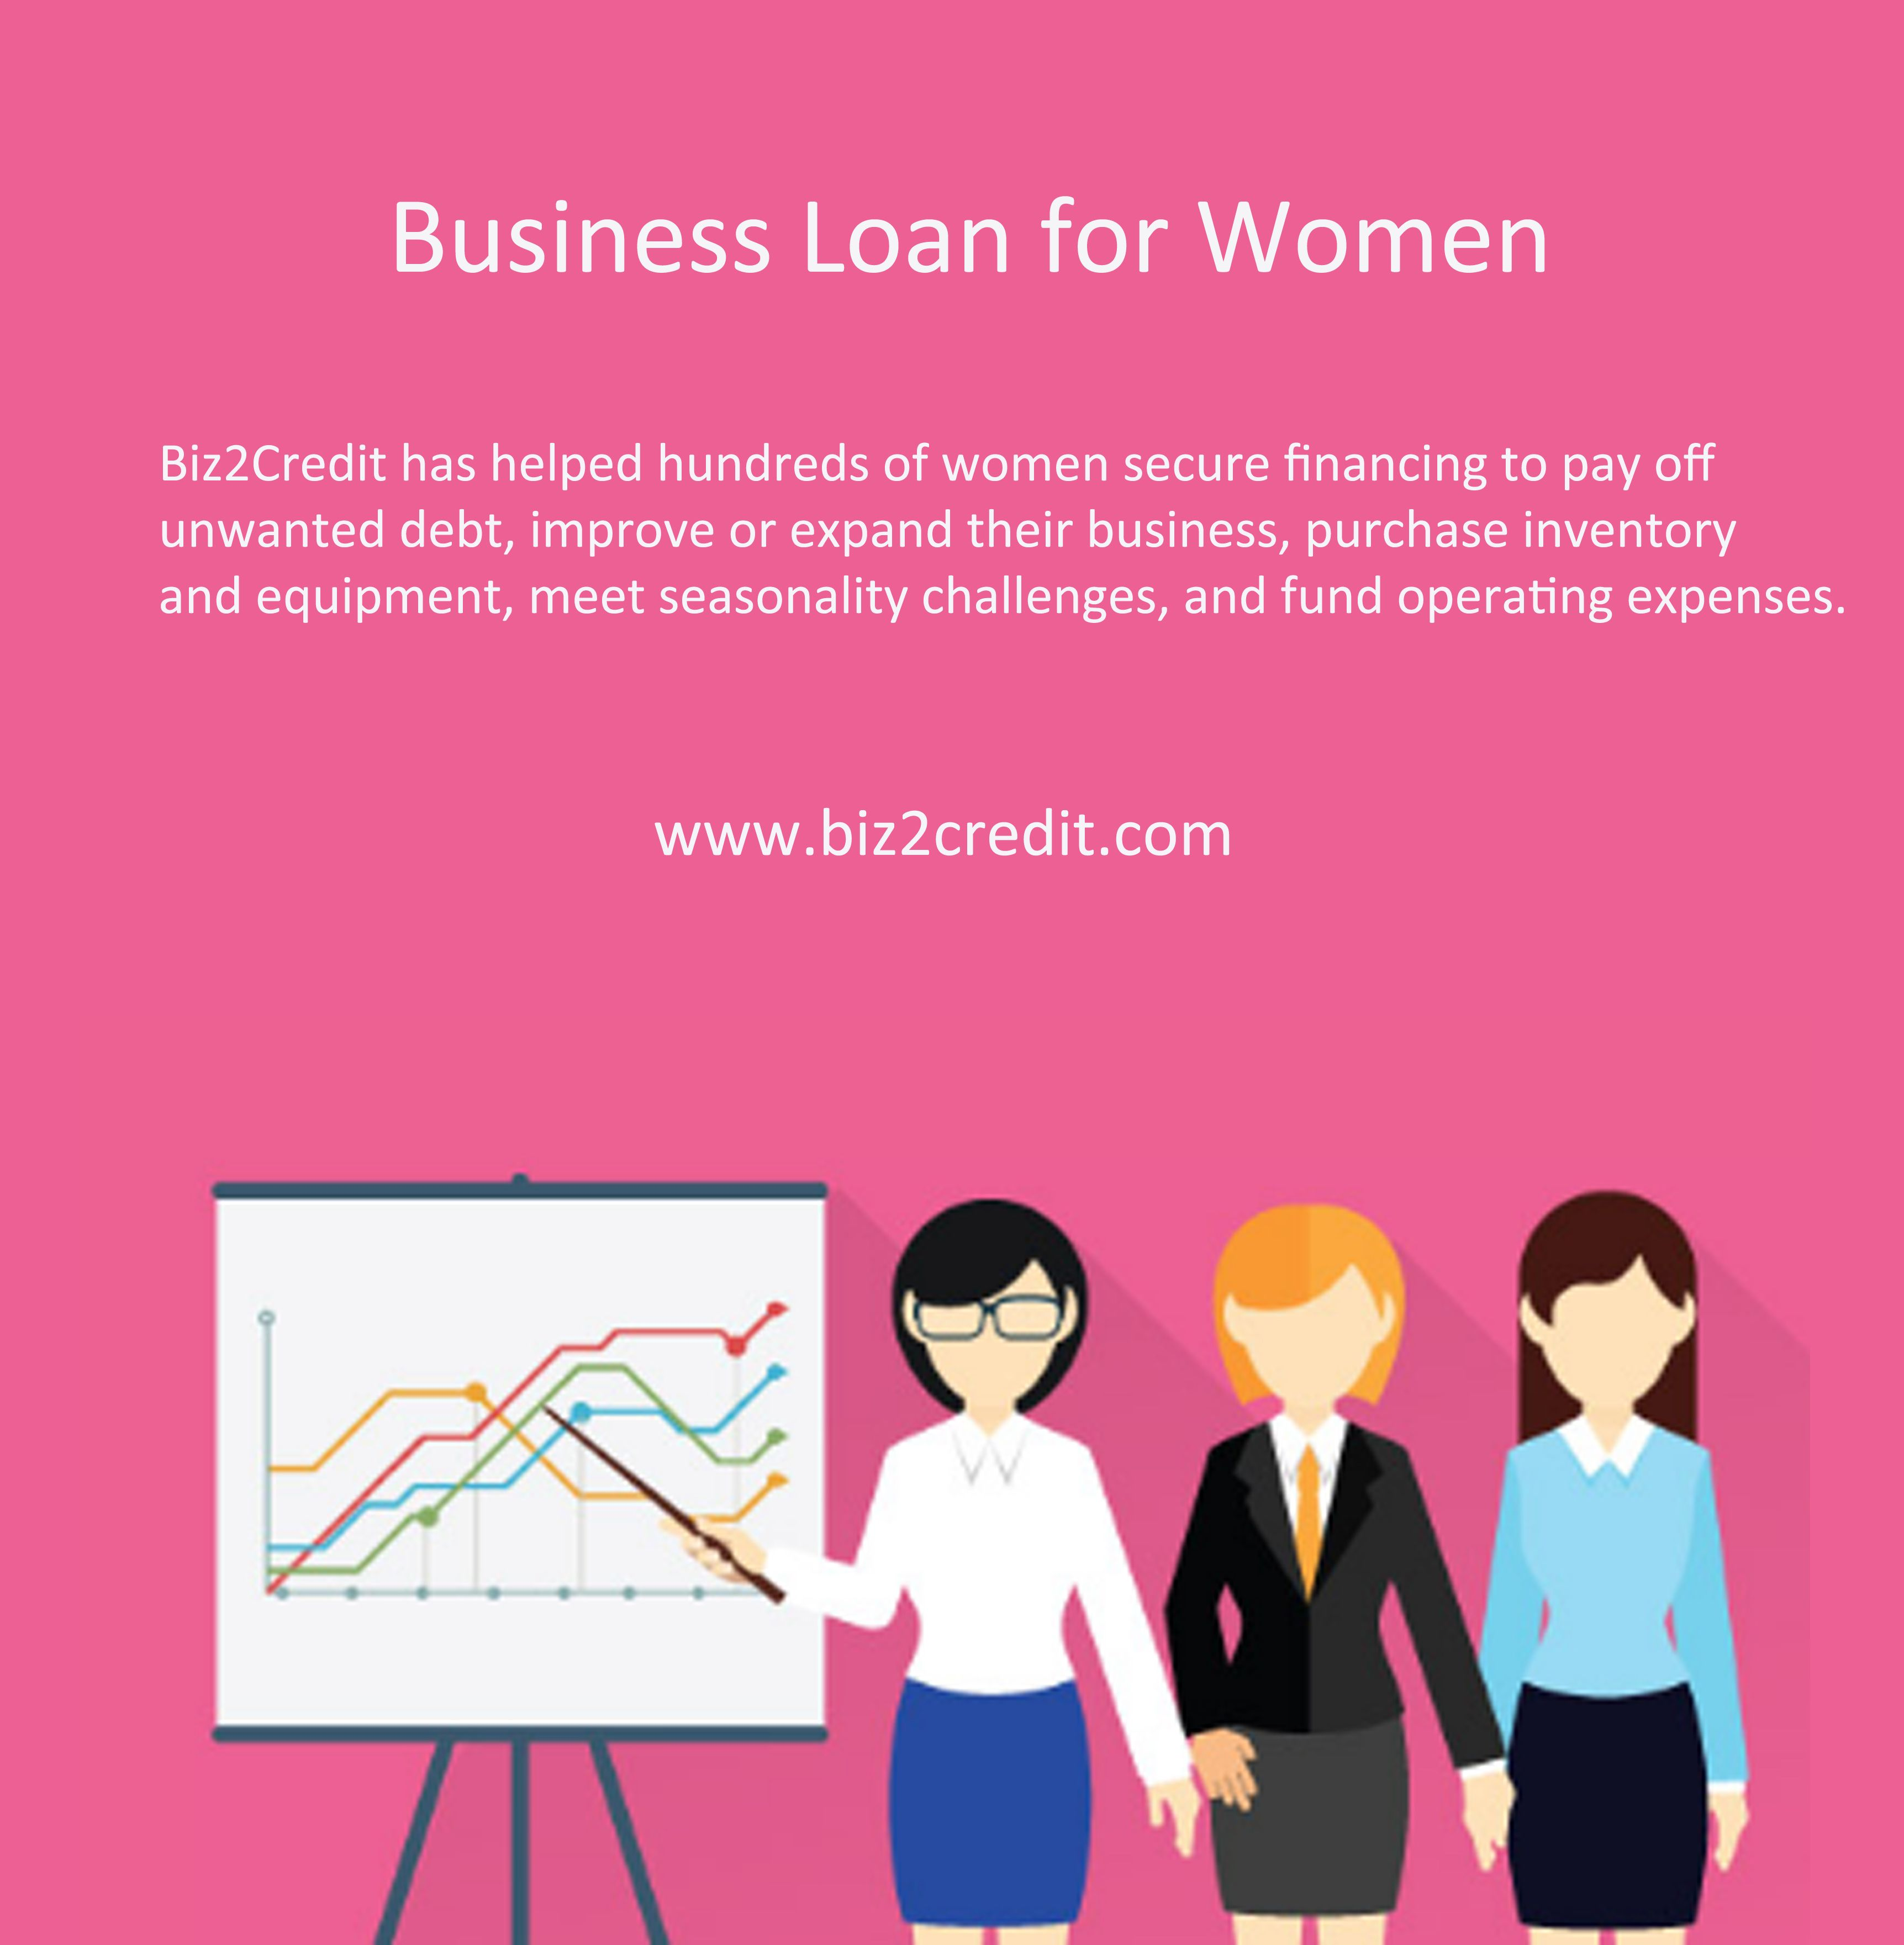 Business Loans For Women Https Www Biz2credit Com Business Loan Business Loans For Women Business Loans Small Business Finance Small Business Loans